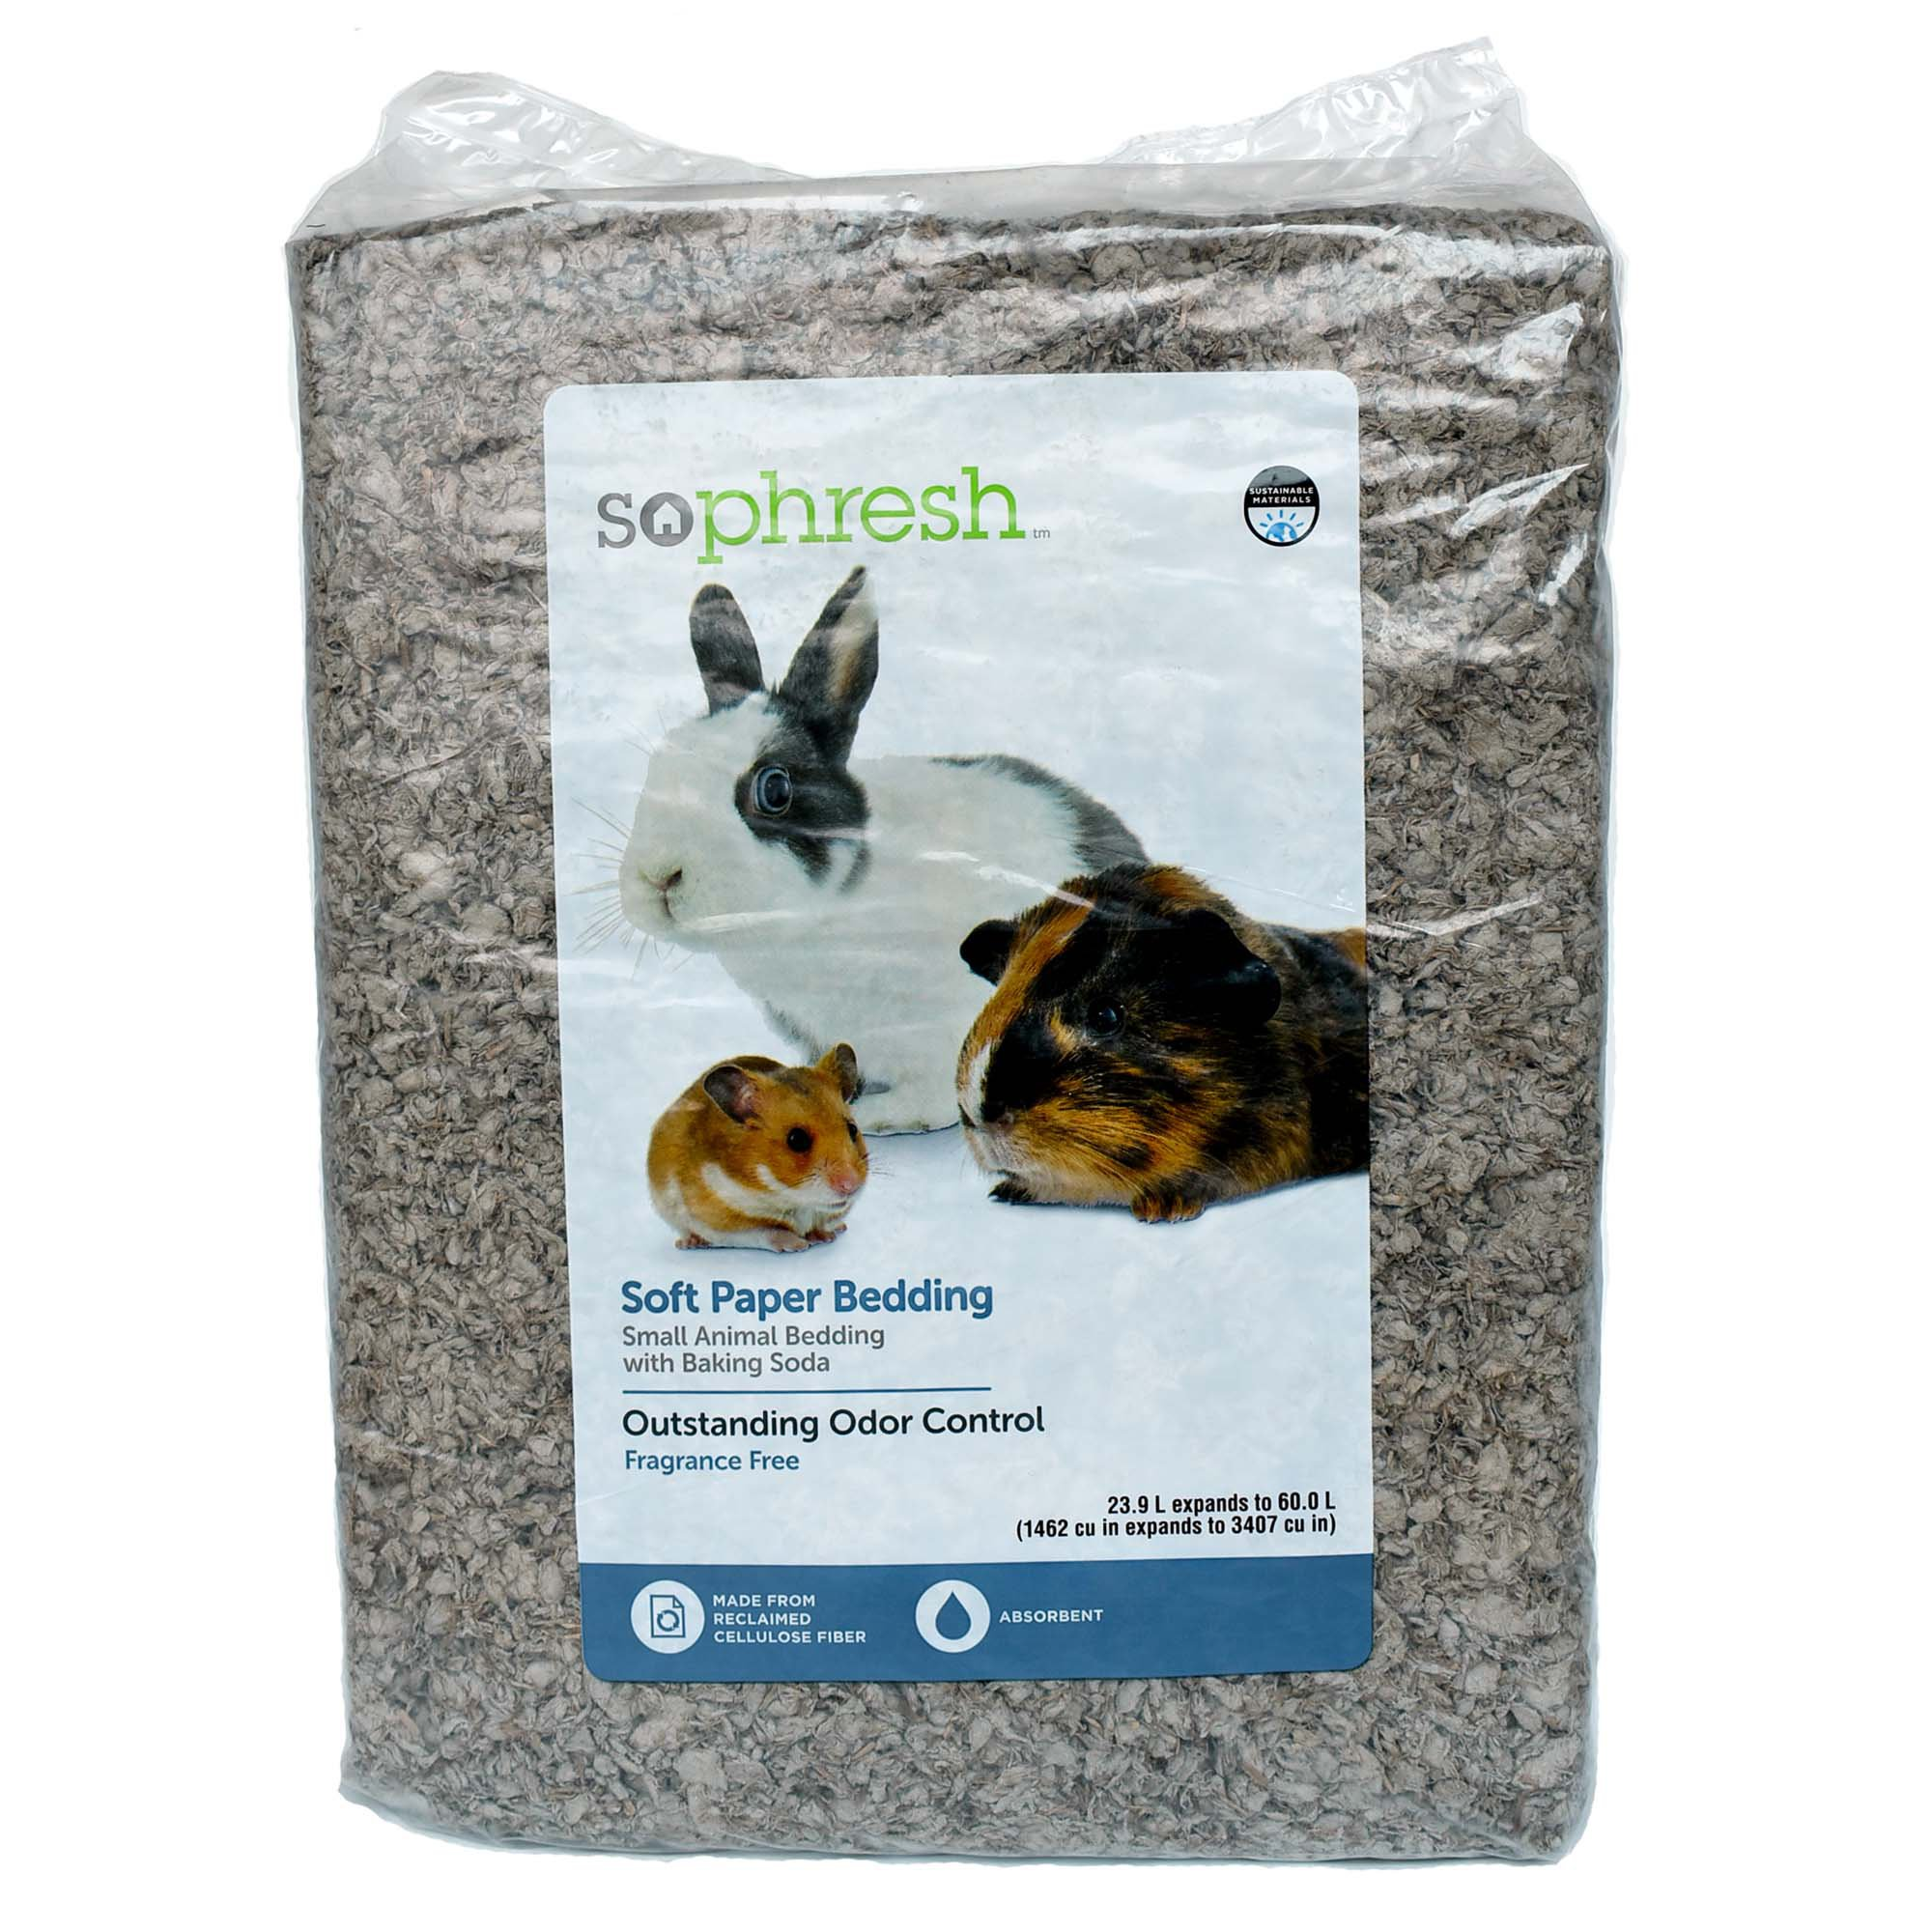 Can i use normal paper as bedding for my rabbit?